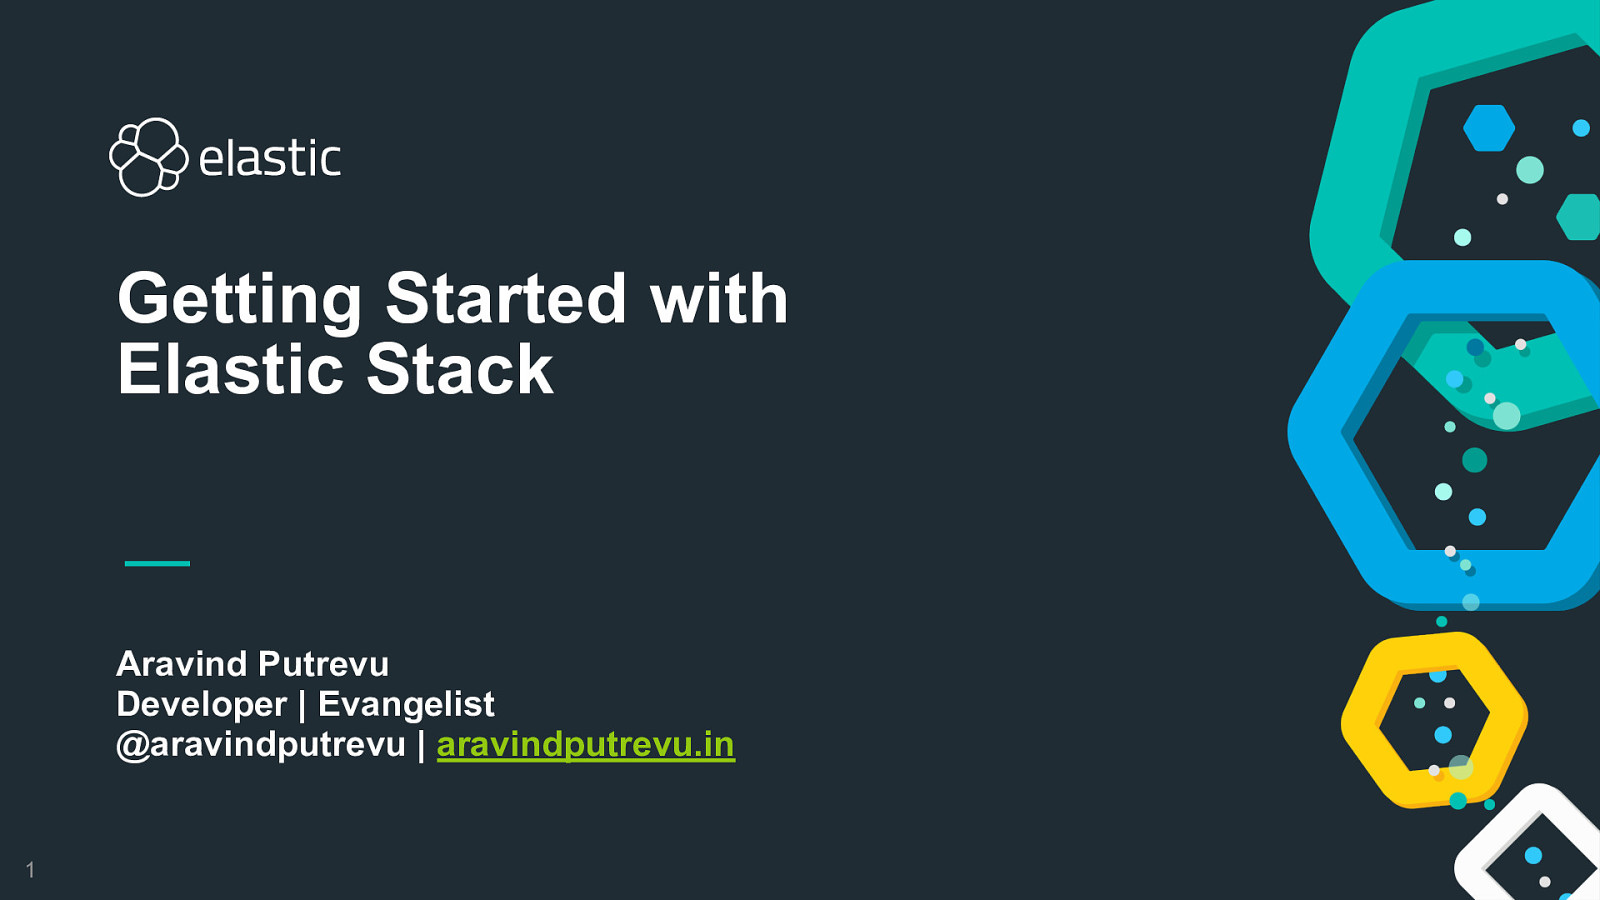 Getting started with Elastic Stack